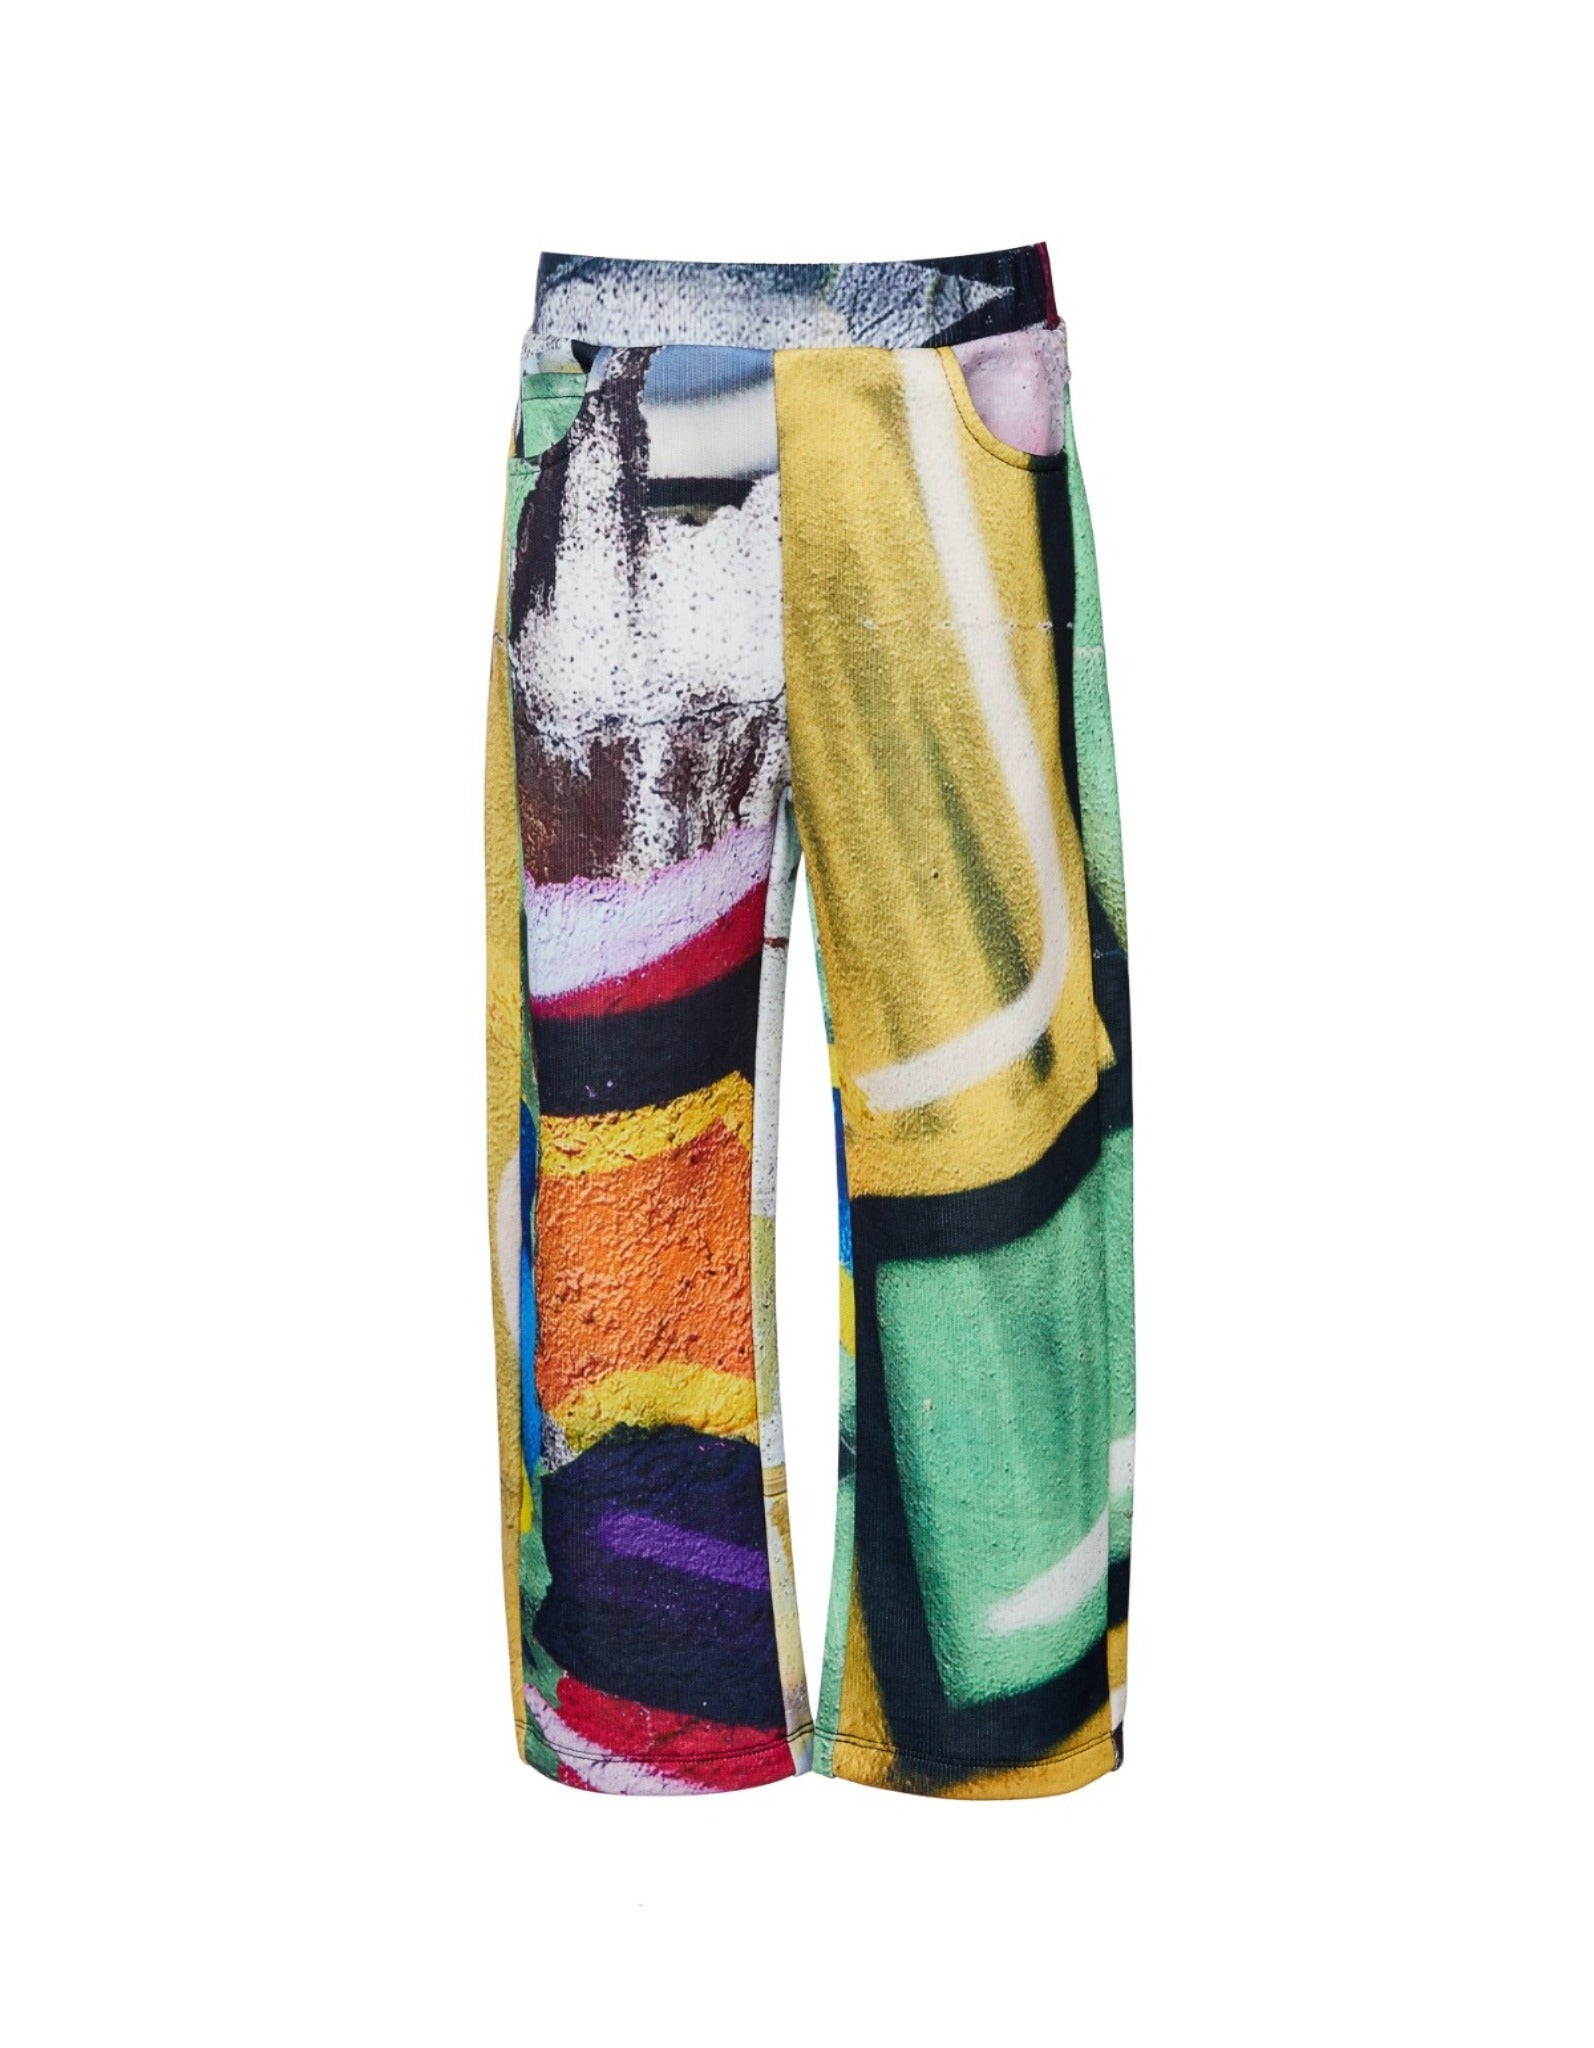 M'A KIDS BAGGY TROUSERS IN BRIGHT PRINT